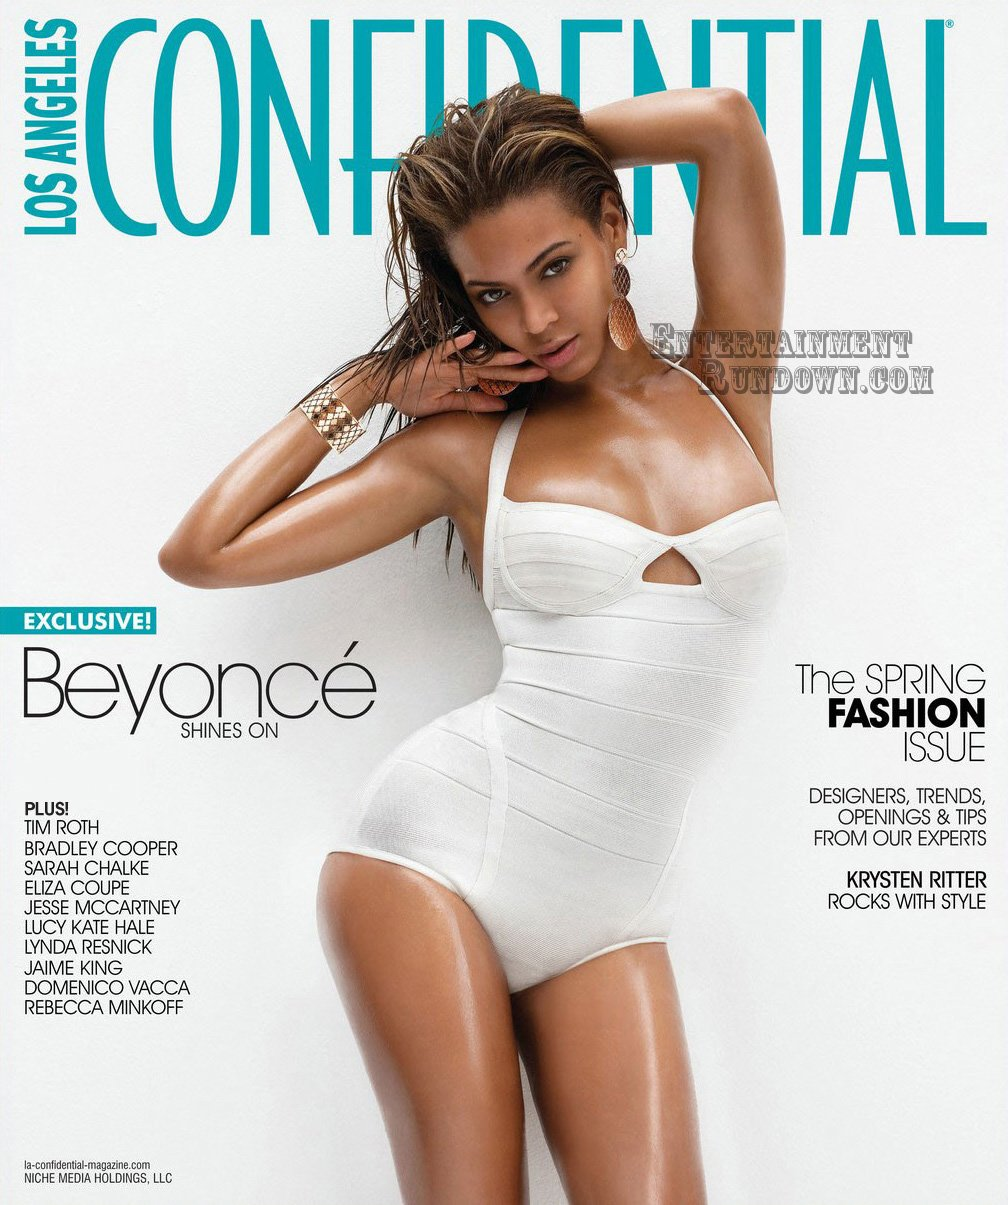 beyonce magazine cover go - photo #24